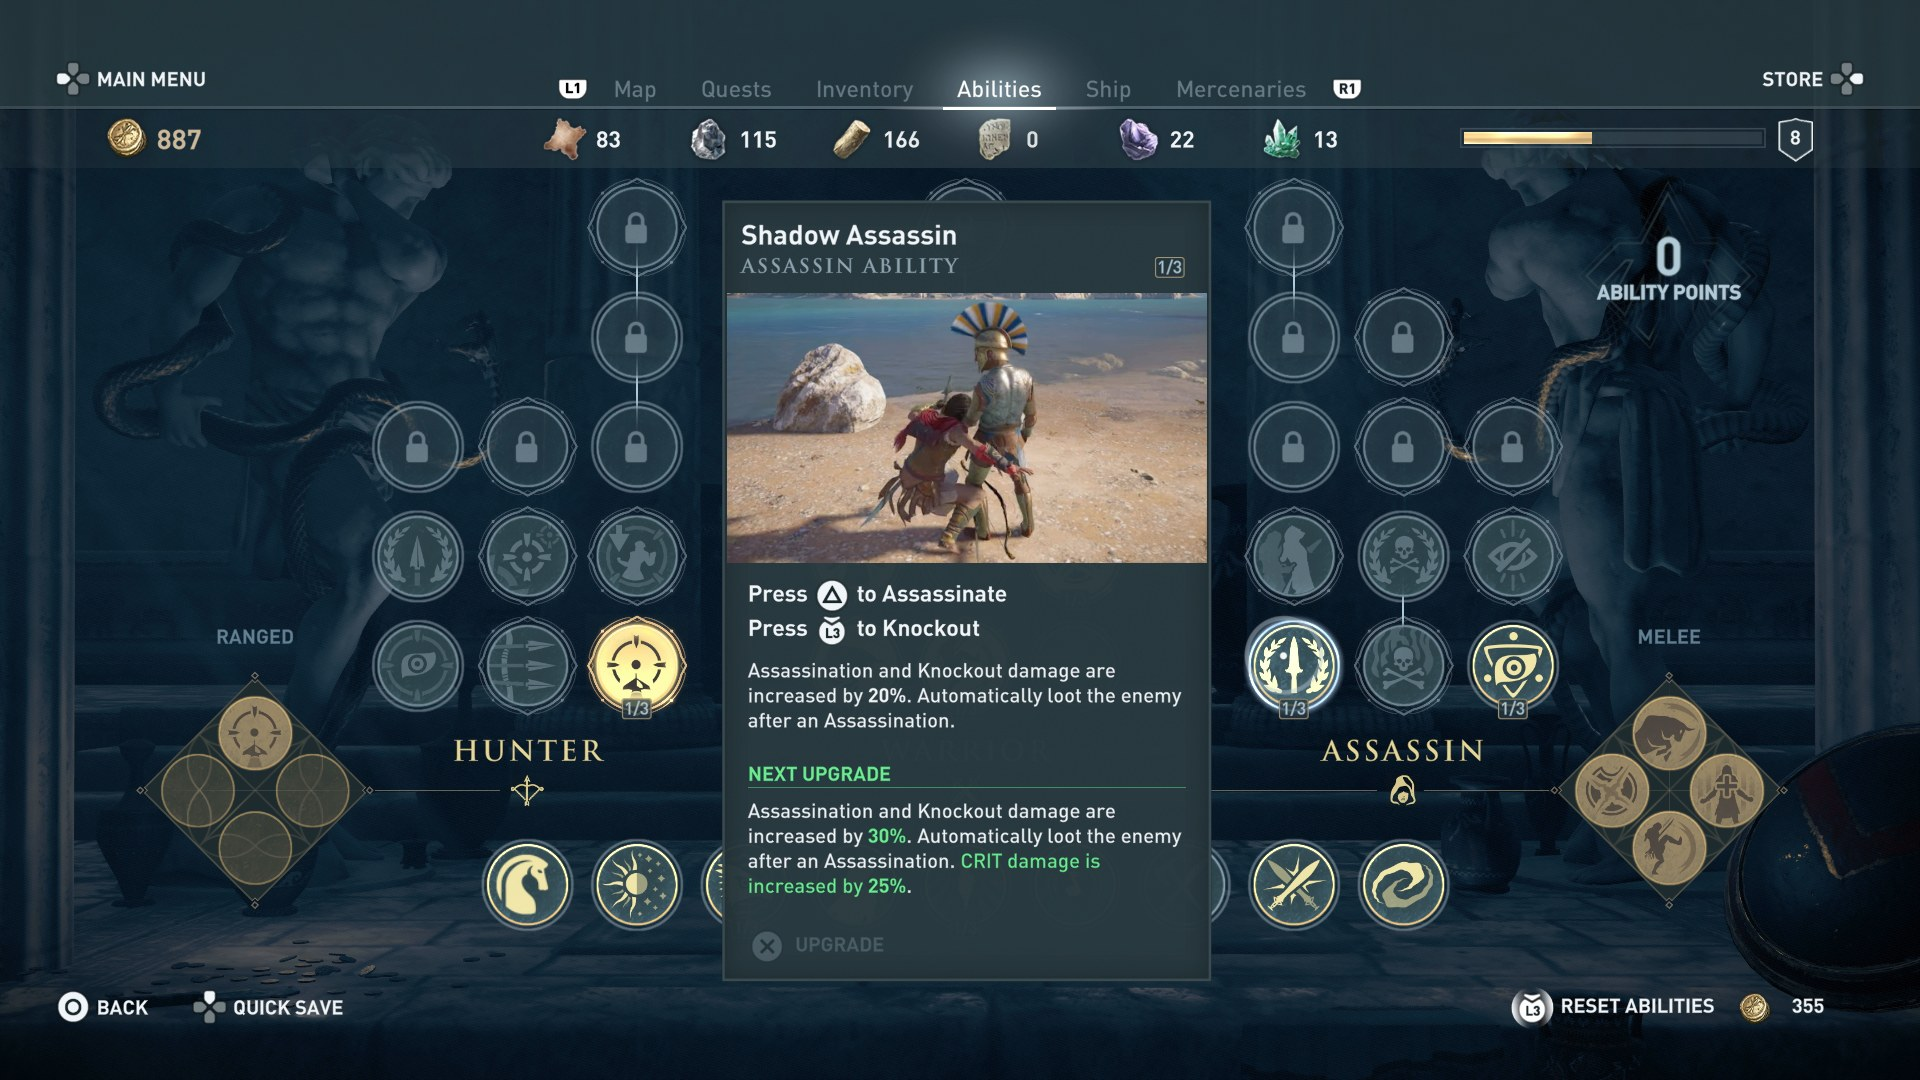 Assassin's Creed Odyssey Abilities - Which Abilities Should You